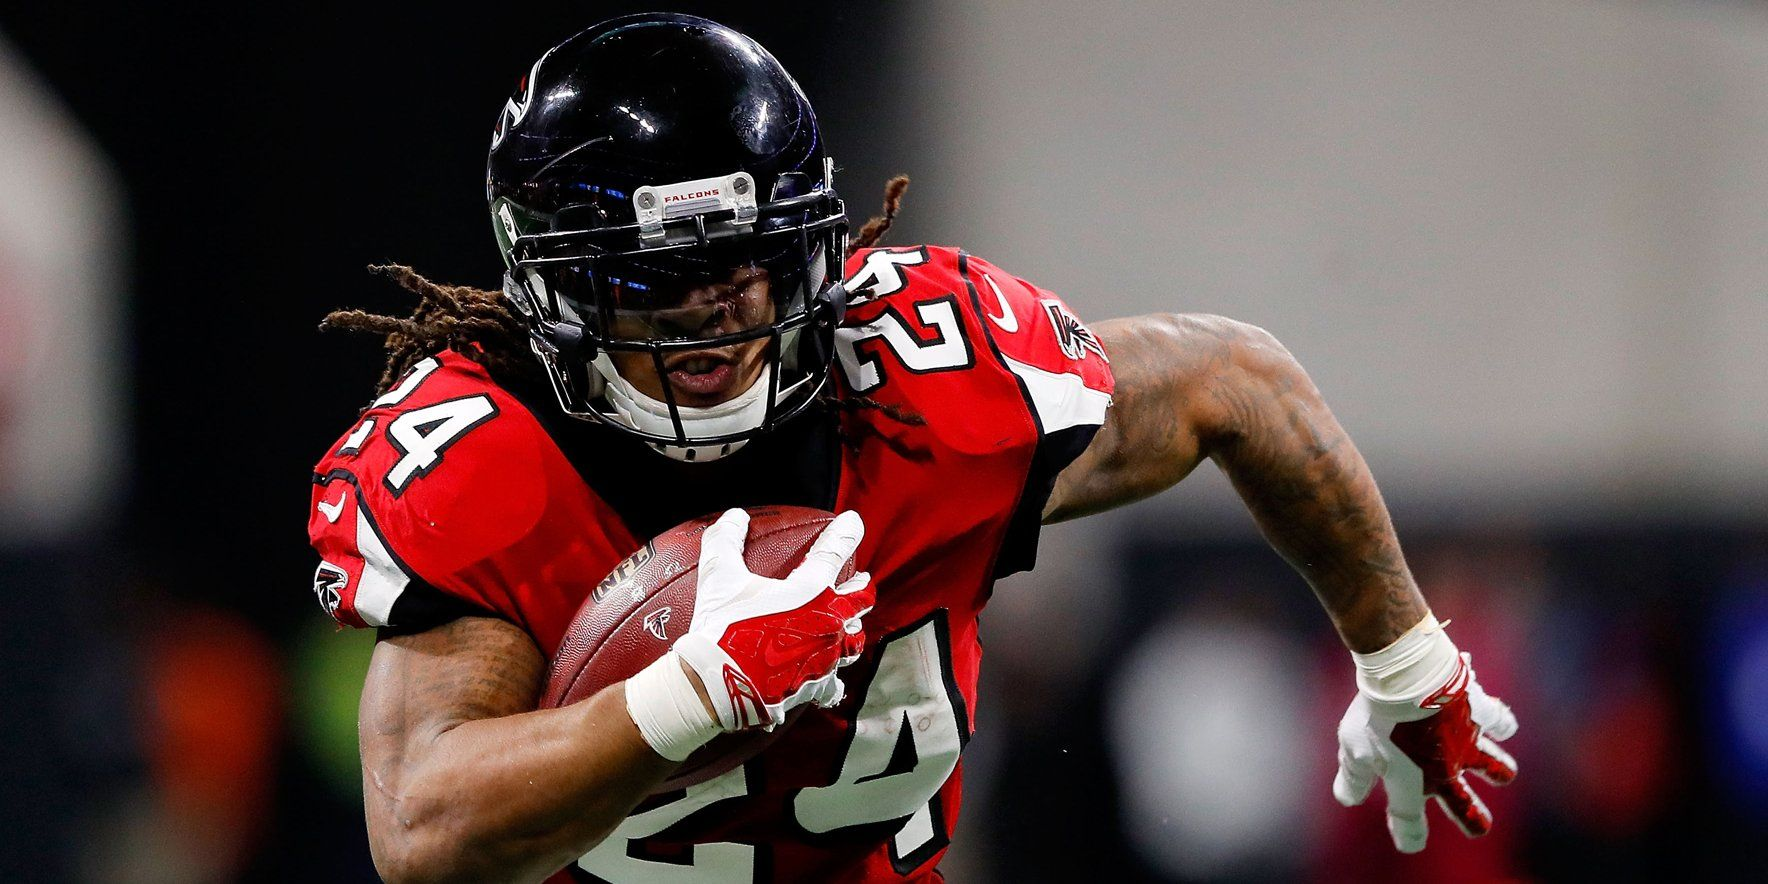 Espn Fantasy Expert Explains No 1 Rule For Fantasy Football Players Fantasy Football Players Devonta Freeman Fantasy Football